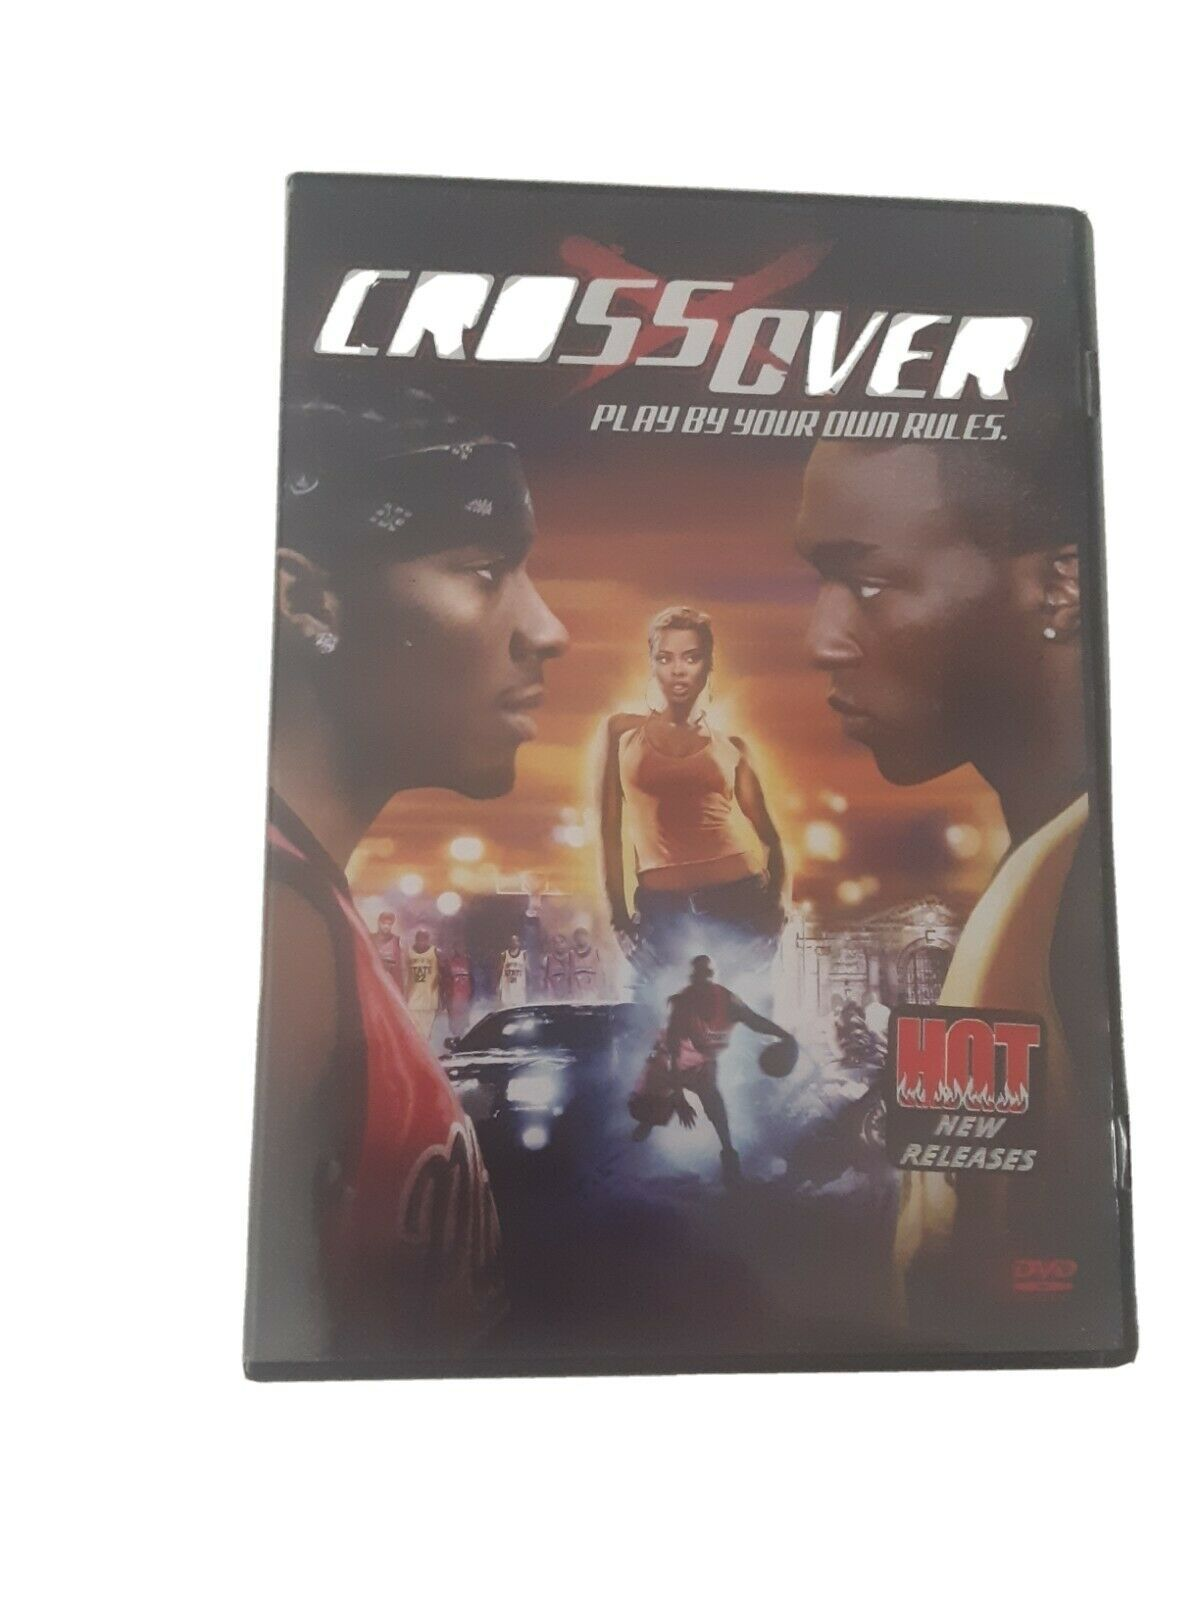 Primary image for Crossover (DVD,2006)